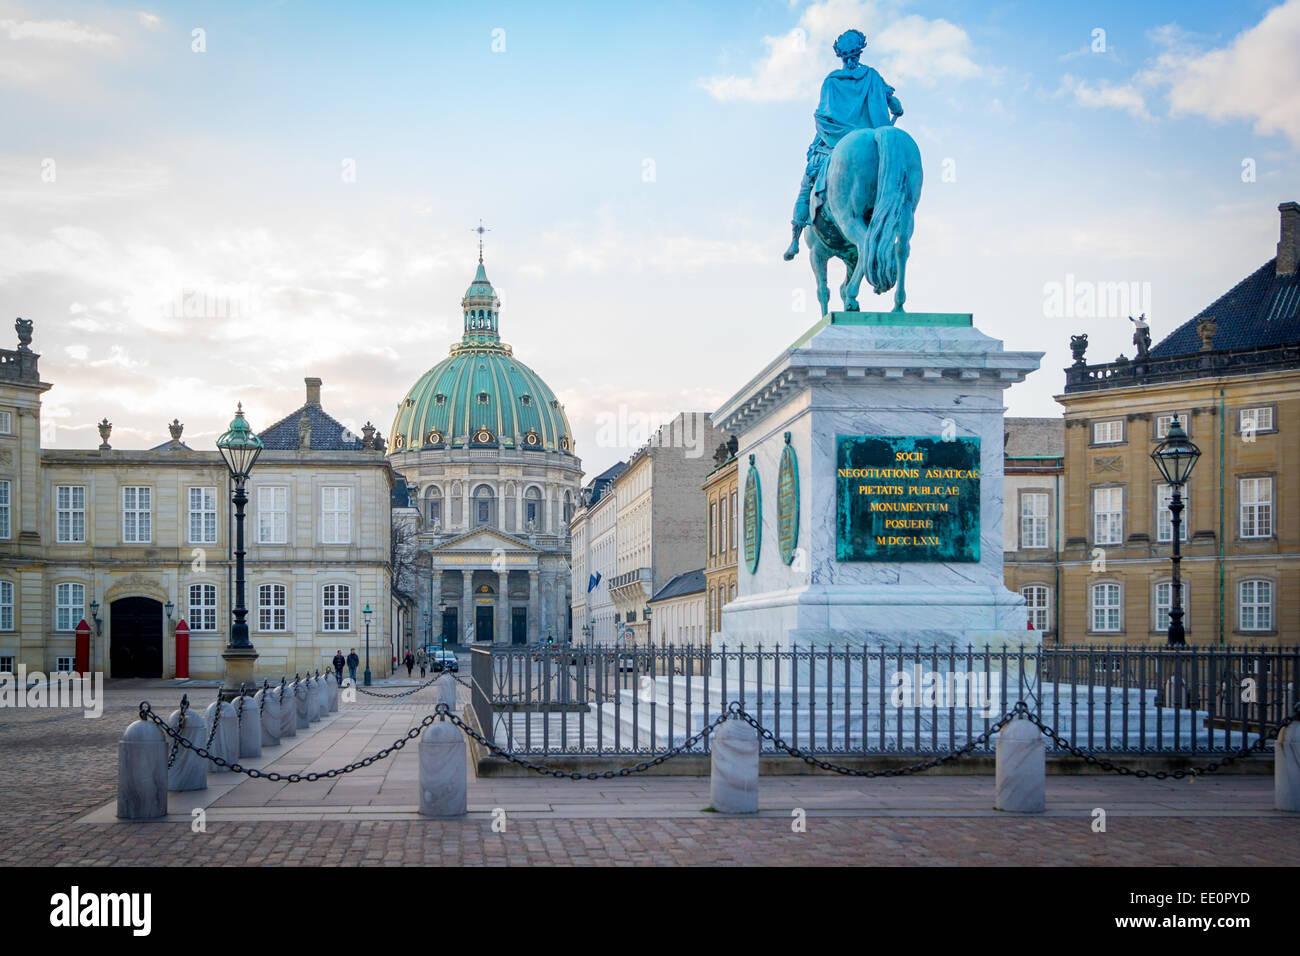 Amalienborg, The Queen's Winter Residence with Frederik's Church in the background. Copenhagen, Denmark Stock Photo